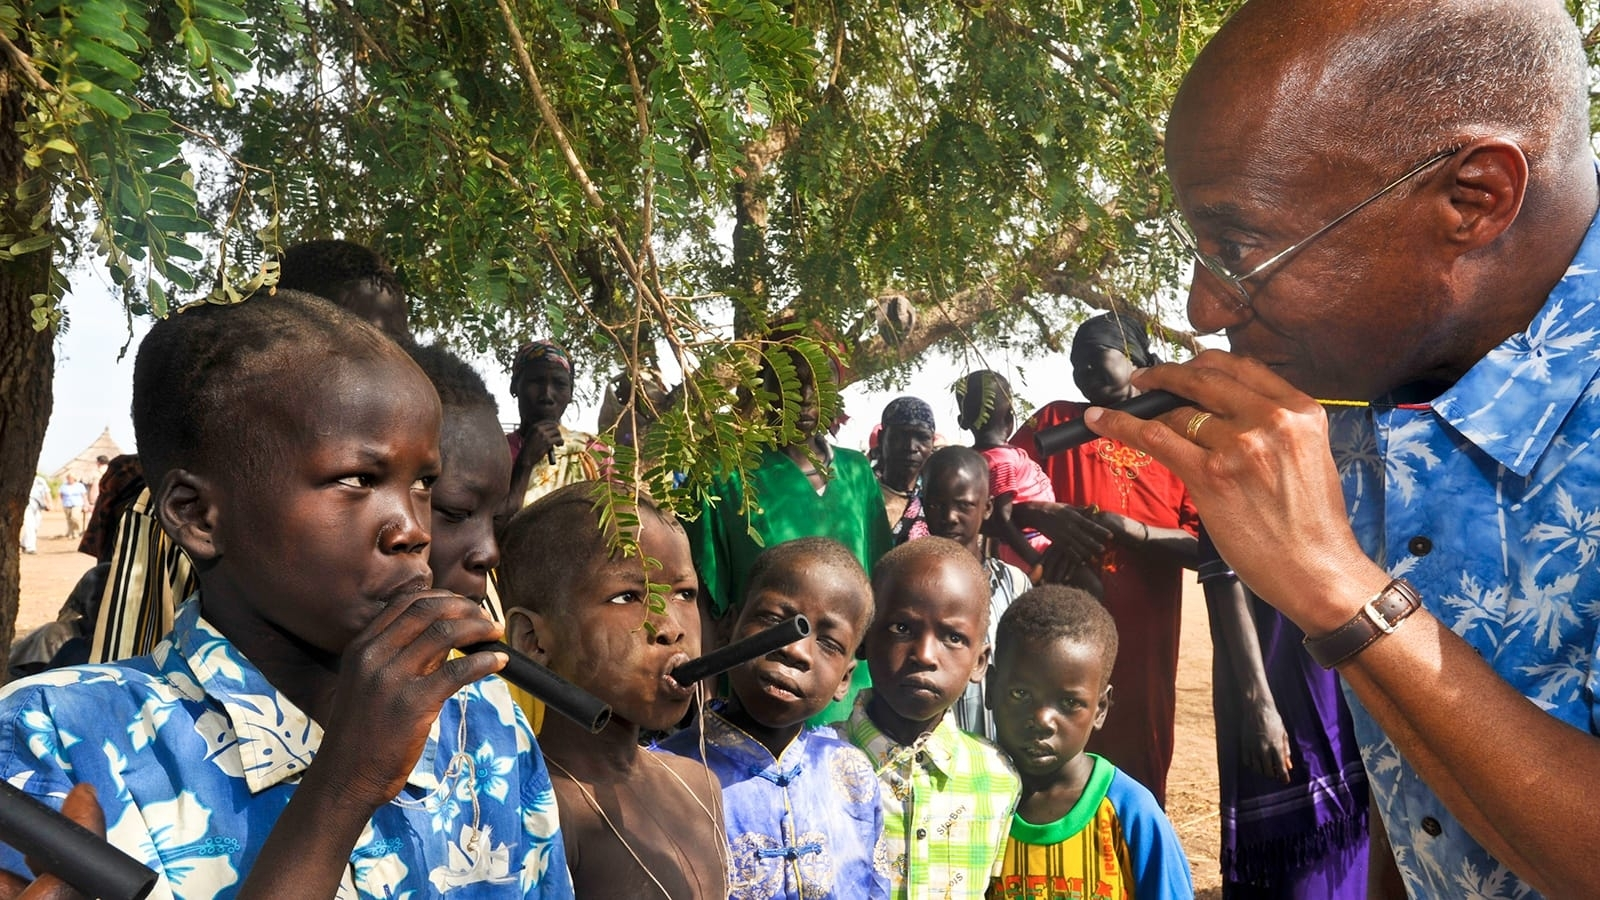 Dr. Donald R. Hopkins shows children in Terekeka County, South Sudan, how to use a portable pipe filter to prevent Guinea worm disease